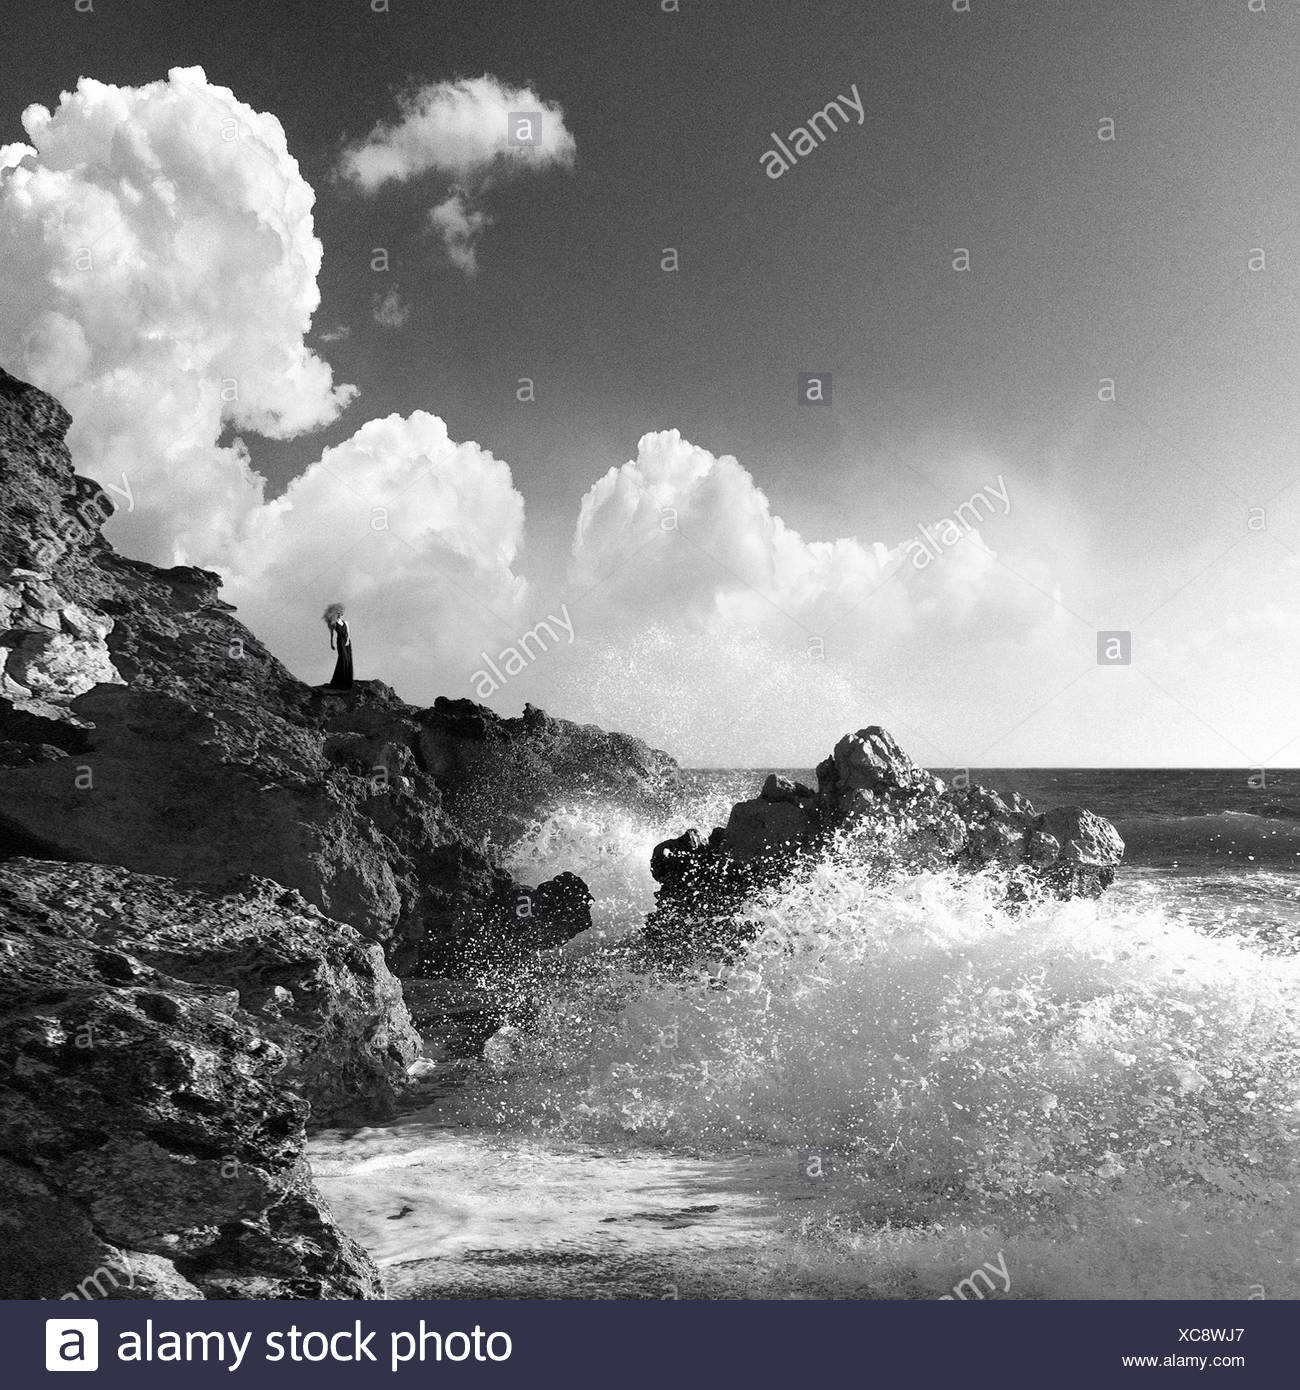 Greece, Peloponnese Periphery, Messenia Prefecture, Kyparissia, Person standing on rocks - Stock Image